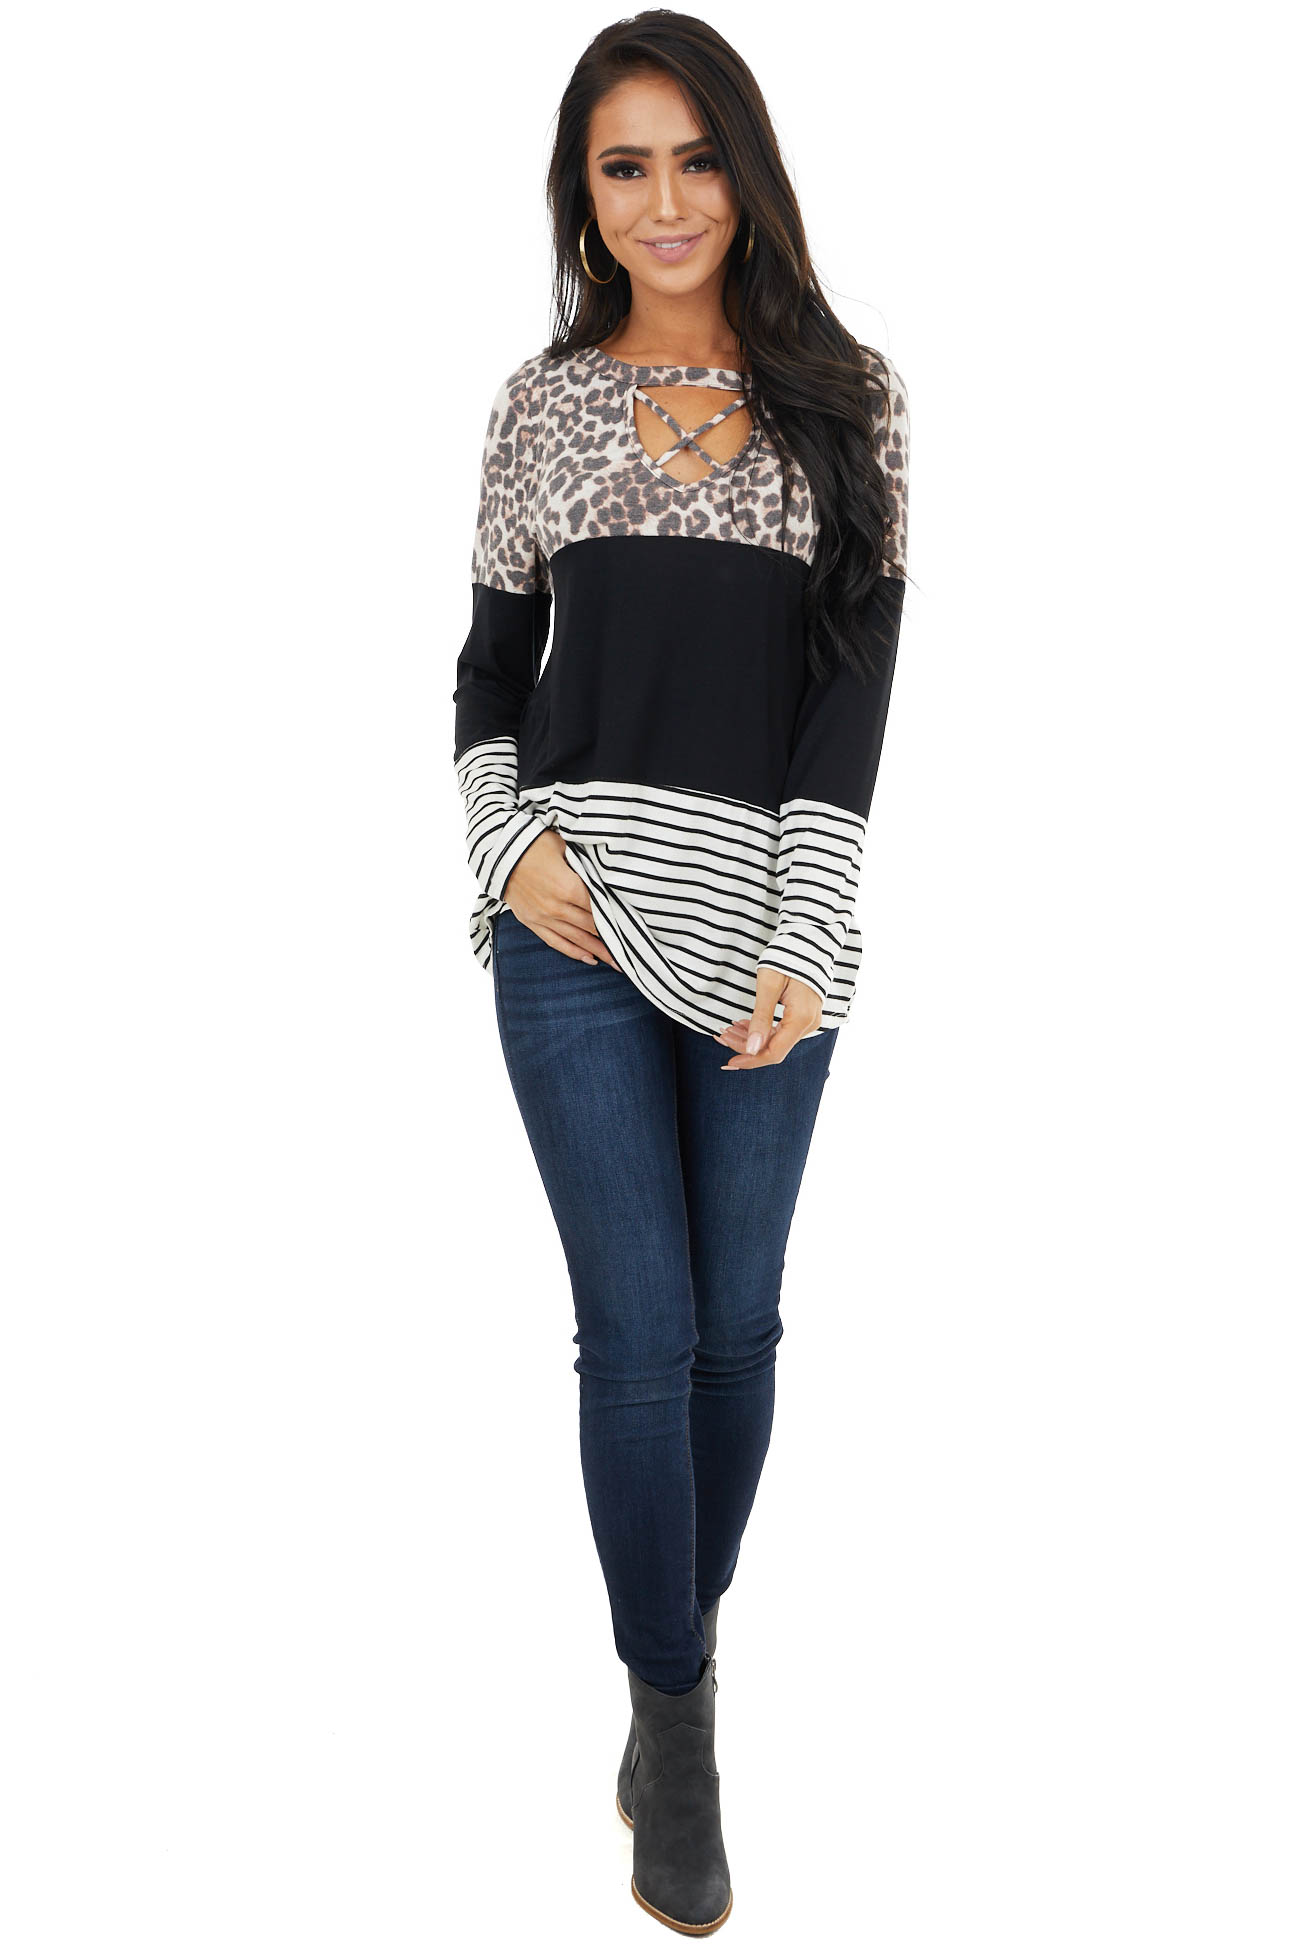 Black Multiprint Colorblock Top with Criss Cross Cutout